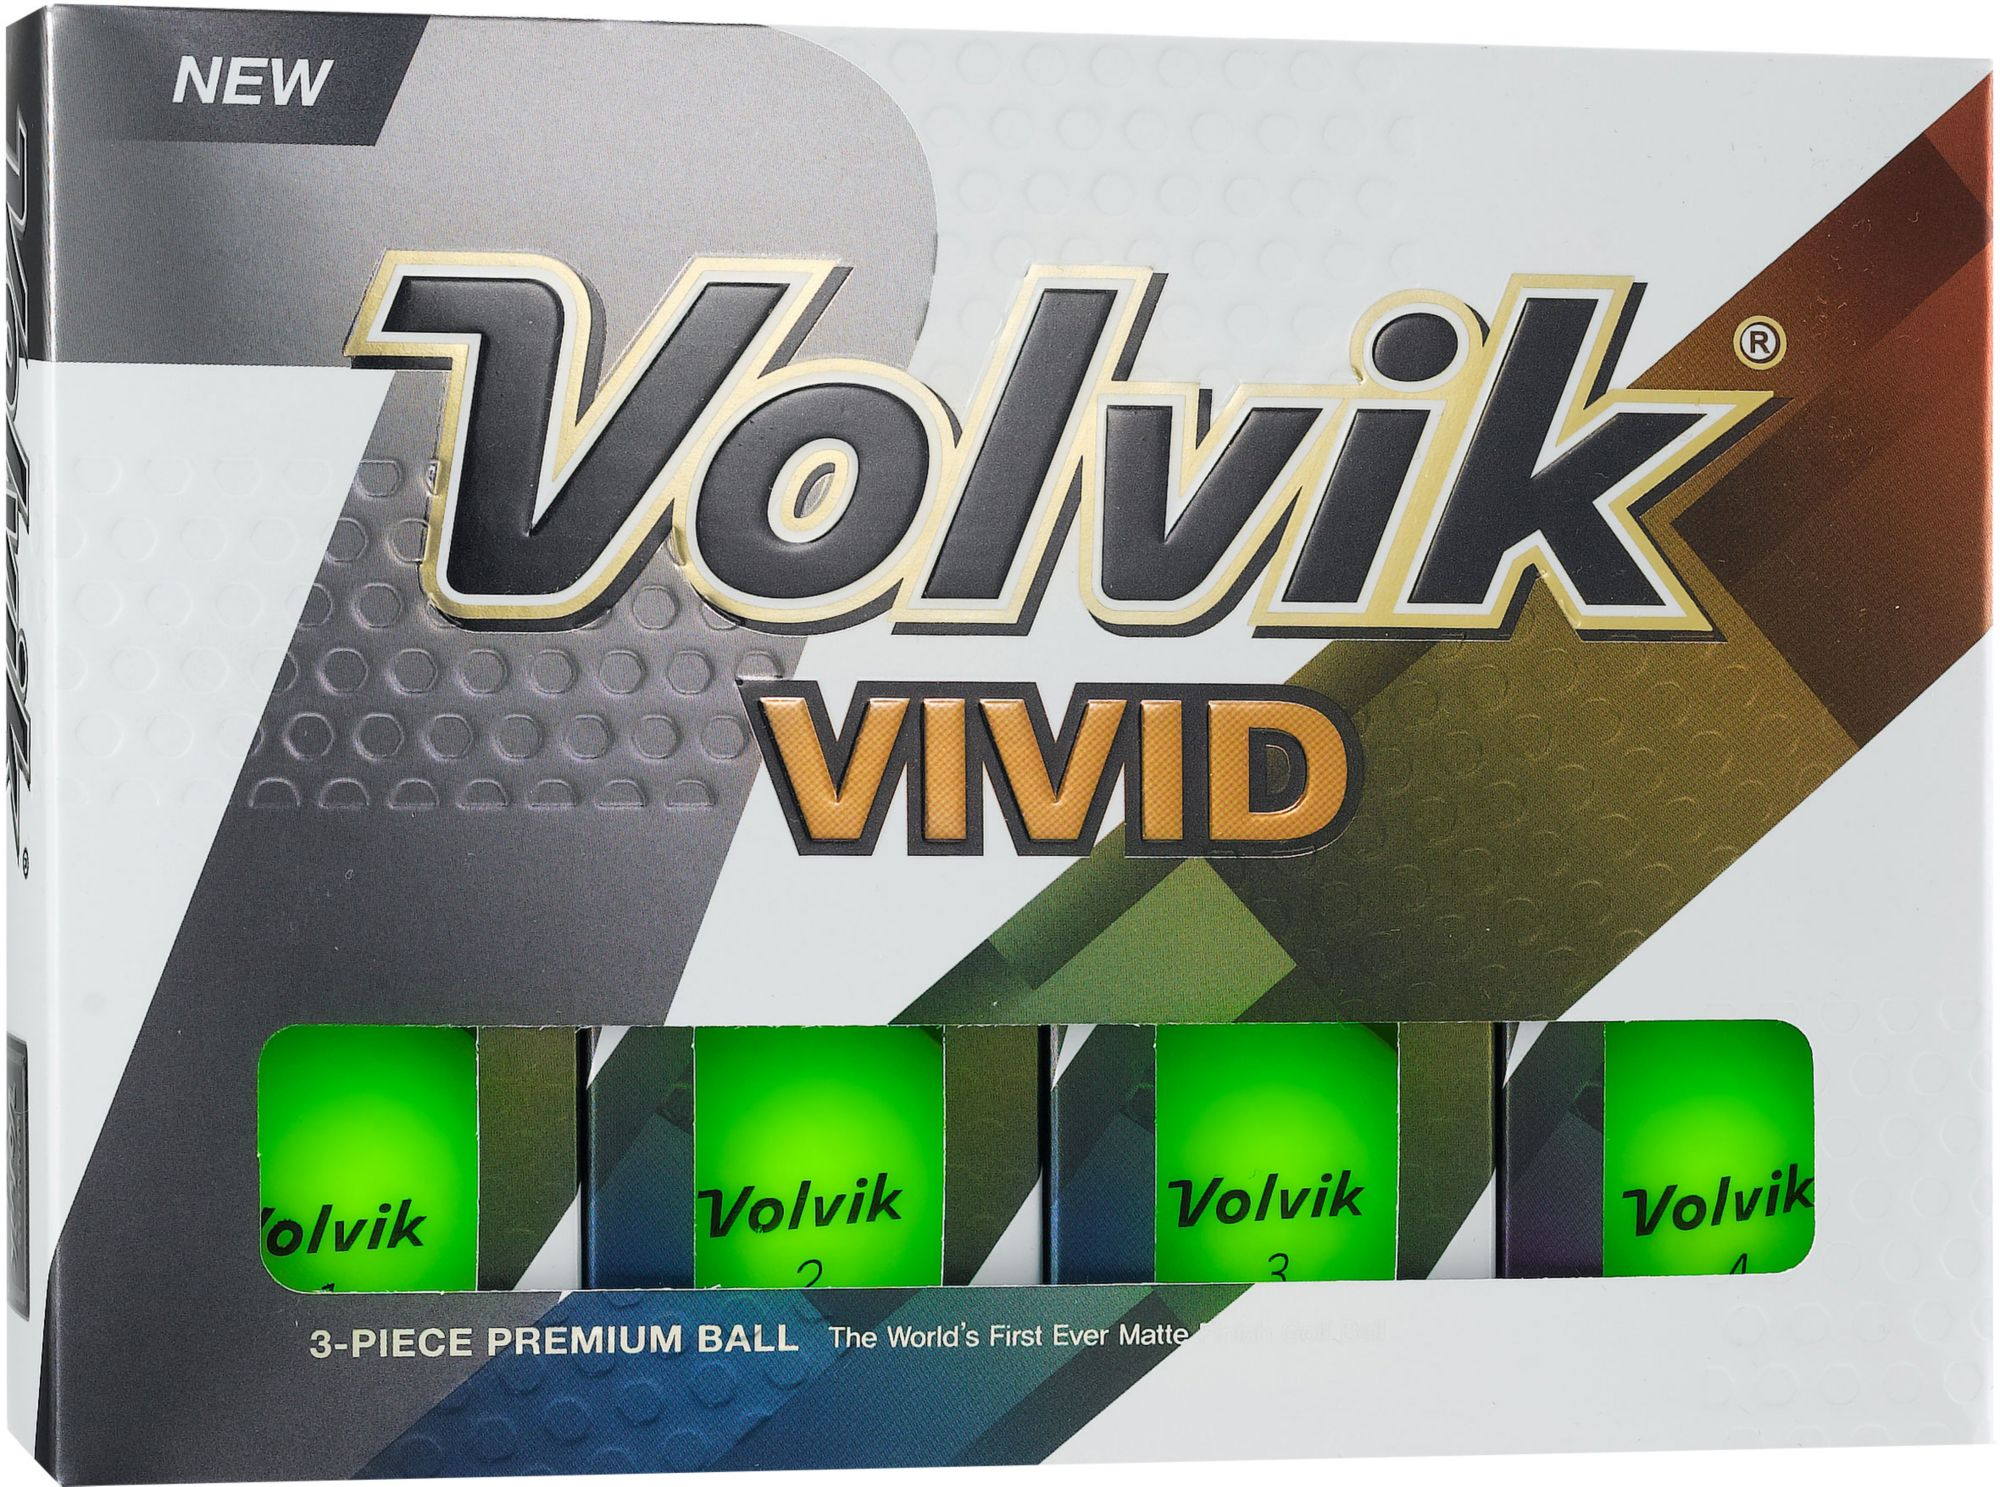 Volvik 2018 Vivid Matte Green Golf Balls by Volvik